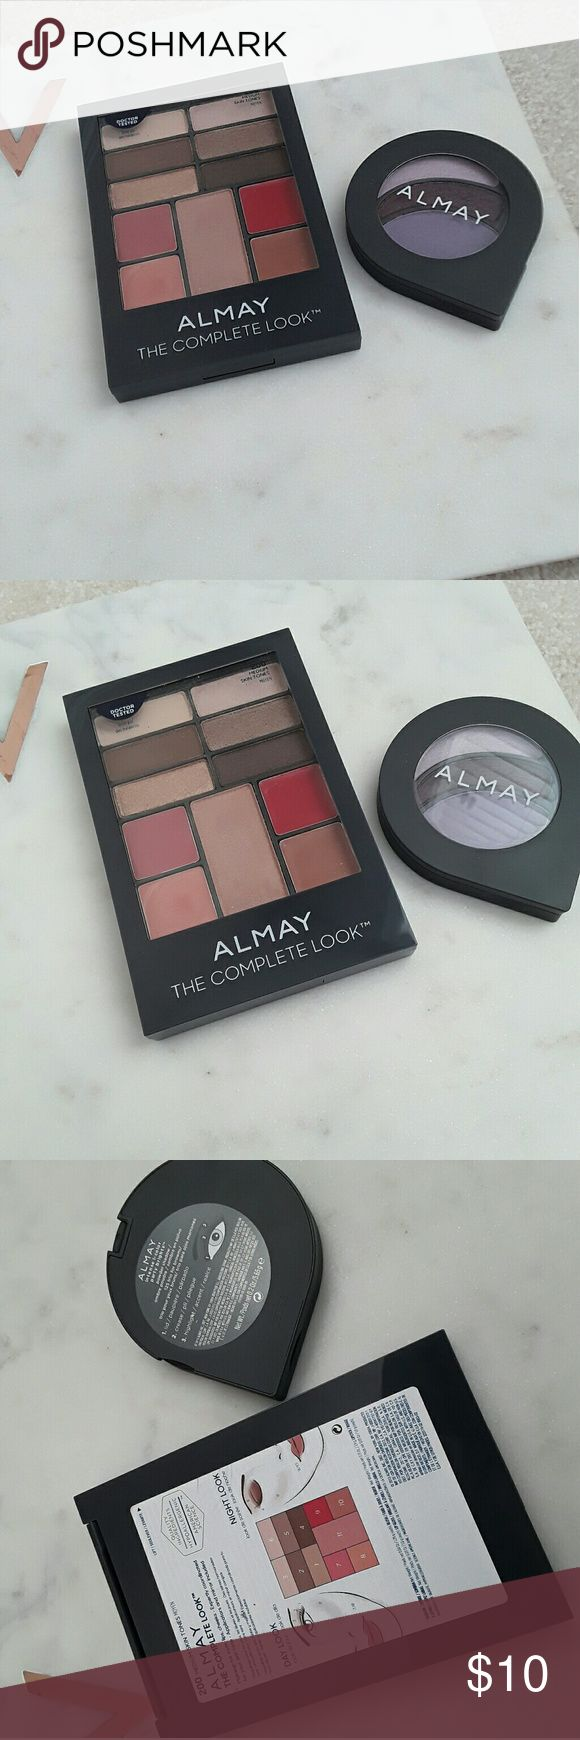 Set Of 2 Almay Eyeshadow Palettes The Larger One Has Only Ever Been  Swatched The How